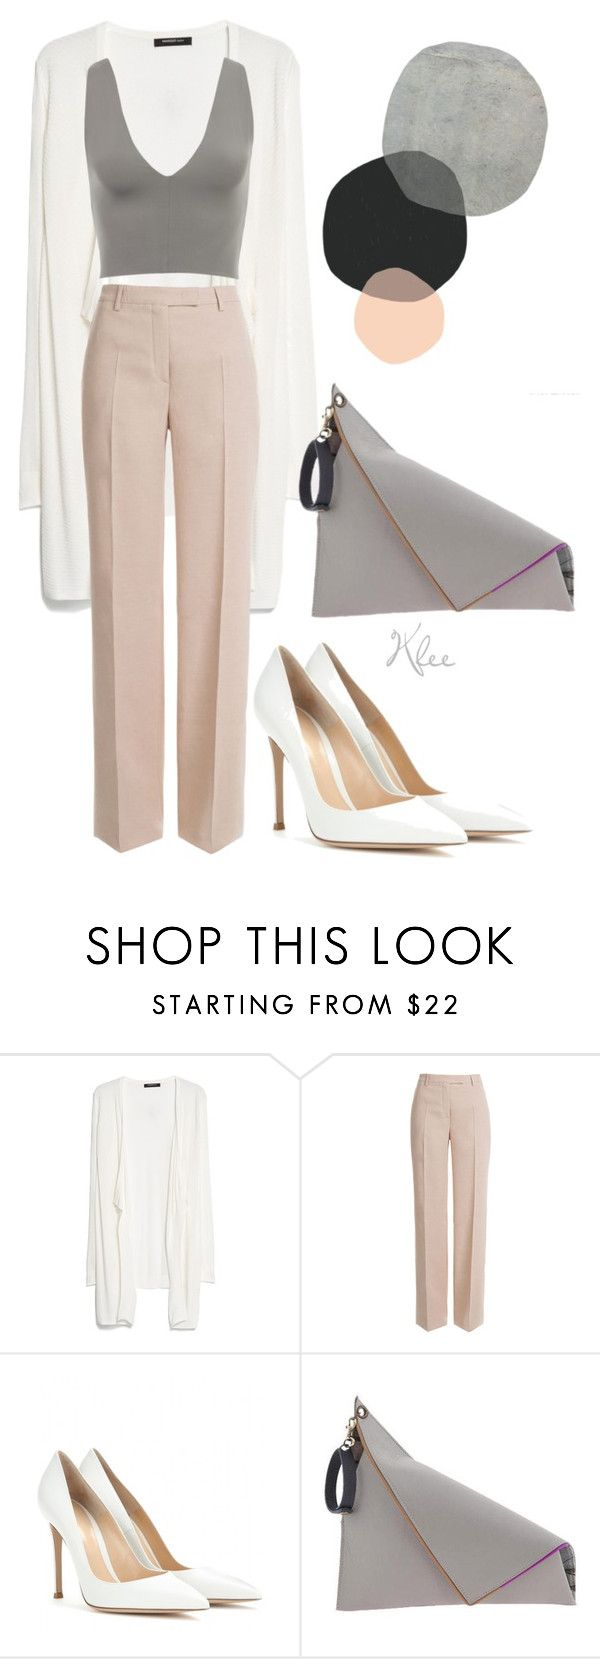 """It's just different"" by katherineklee ❤ liked on Polyvore featuring MANGO, Emilio Pucci, Gianvito Rossi and Georgina Skalidi"